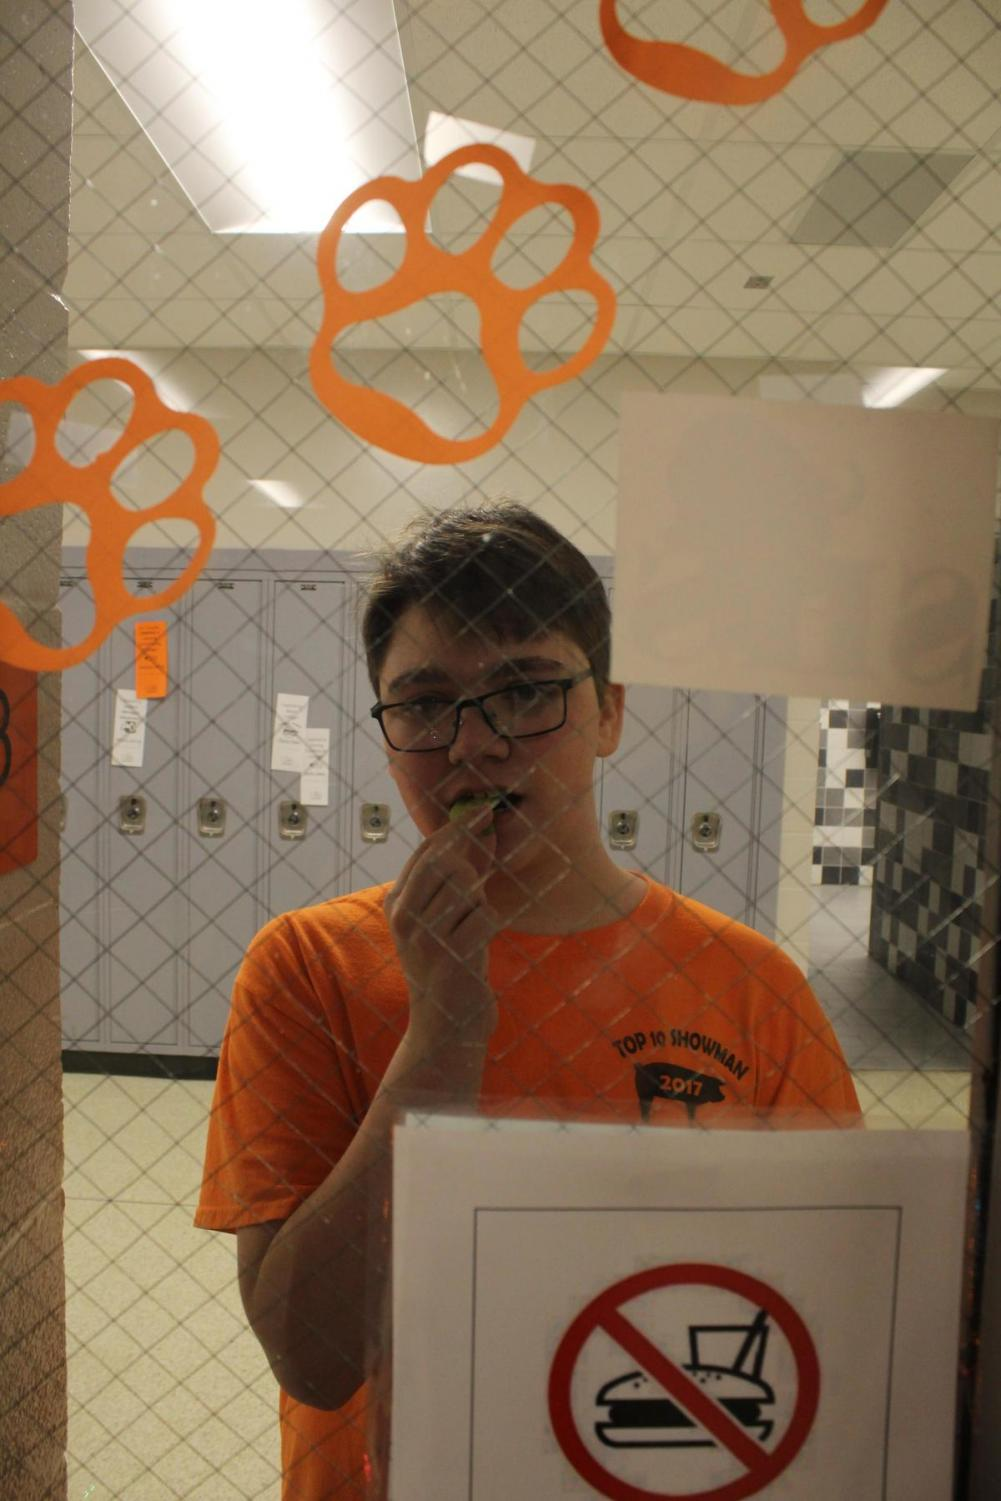 In a mocking mood, sophomore Evan Williams stands outside Spanish teacher Christina Villegas' room eating a snack. Villegas, one of many instructors, allows no food in her classroom.